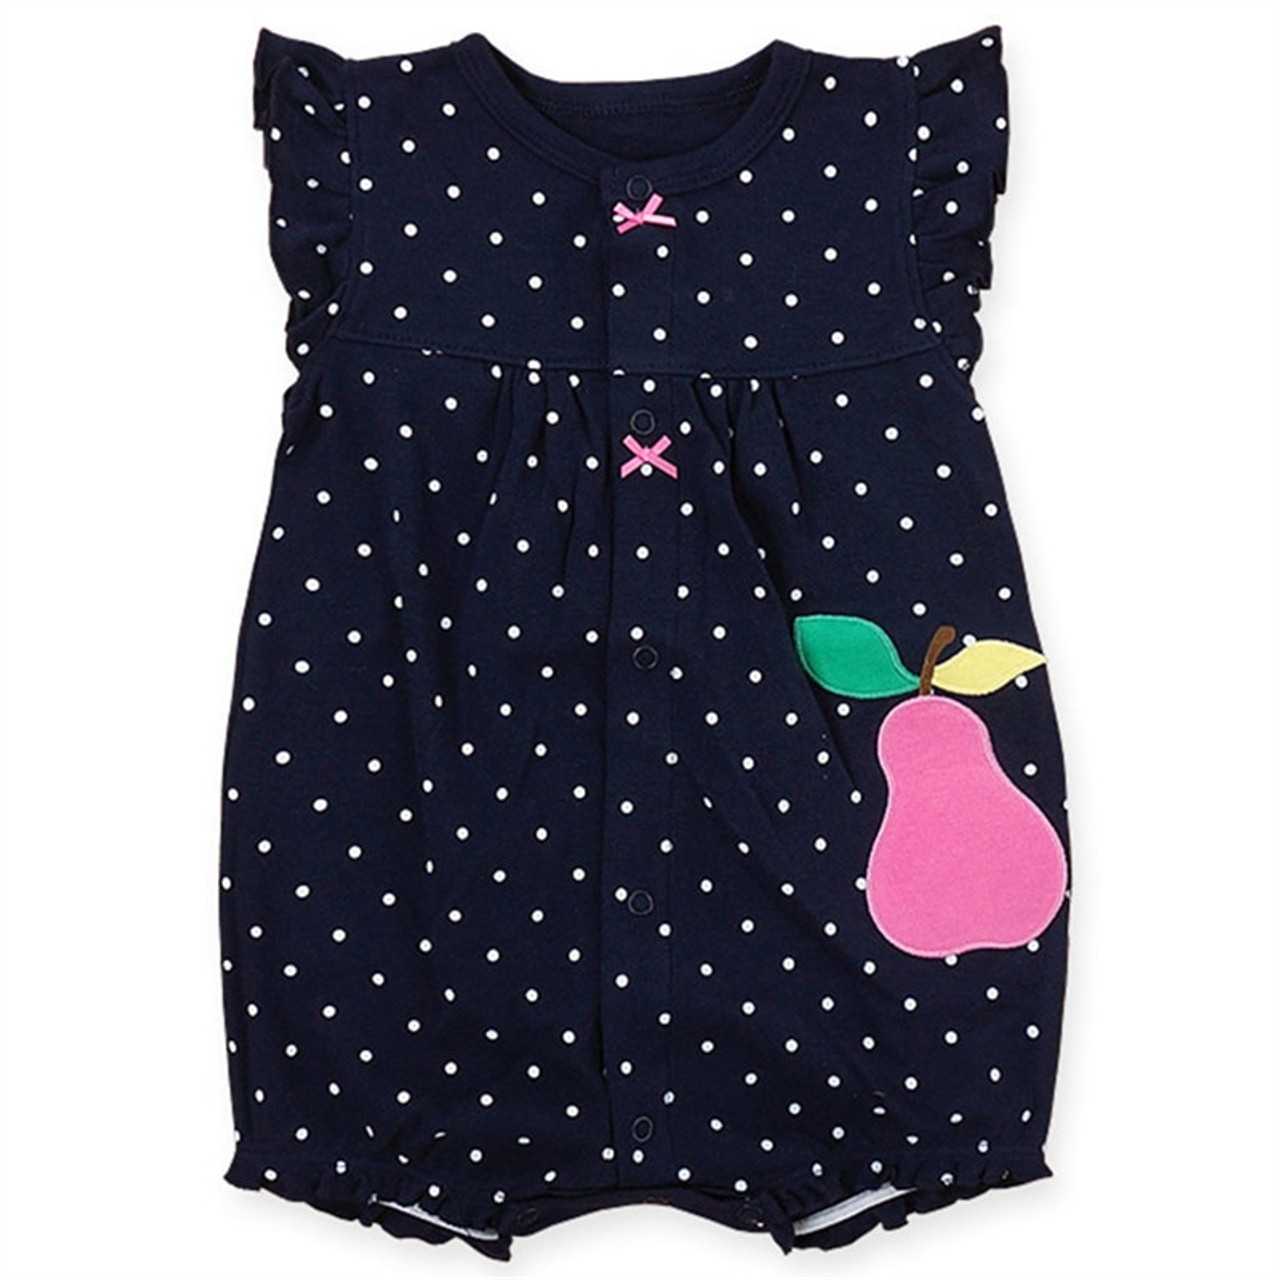 d368817e2d6 ... 2018 Summer Newborn Cotton Baby Girls Clothes Cute Cartoon Animal Baby  Rompers Infant Toddlers Short Sleeve ...